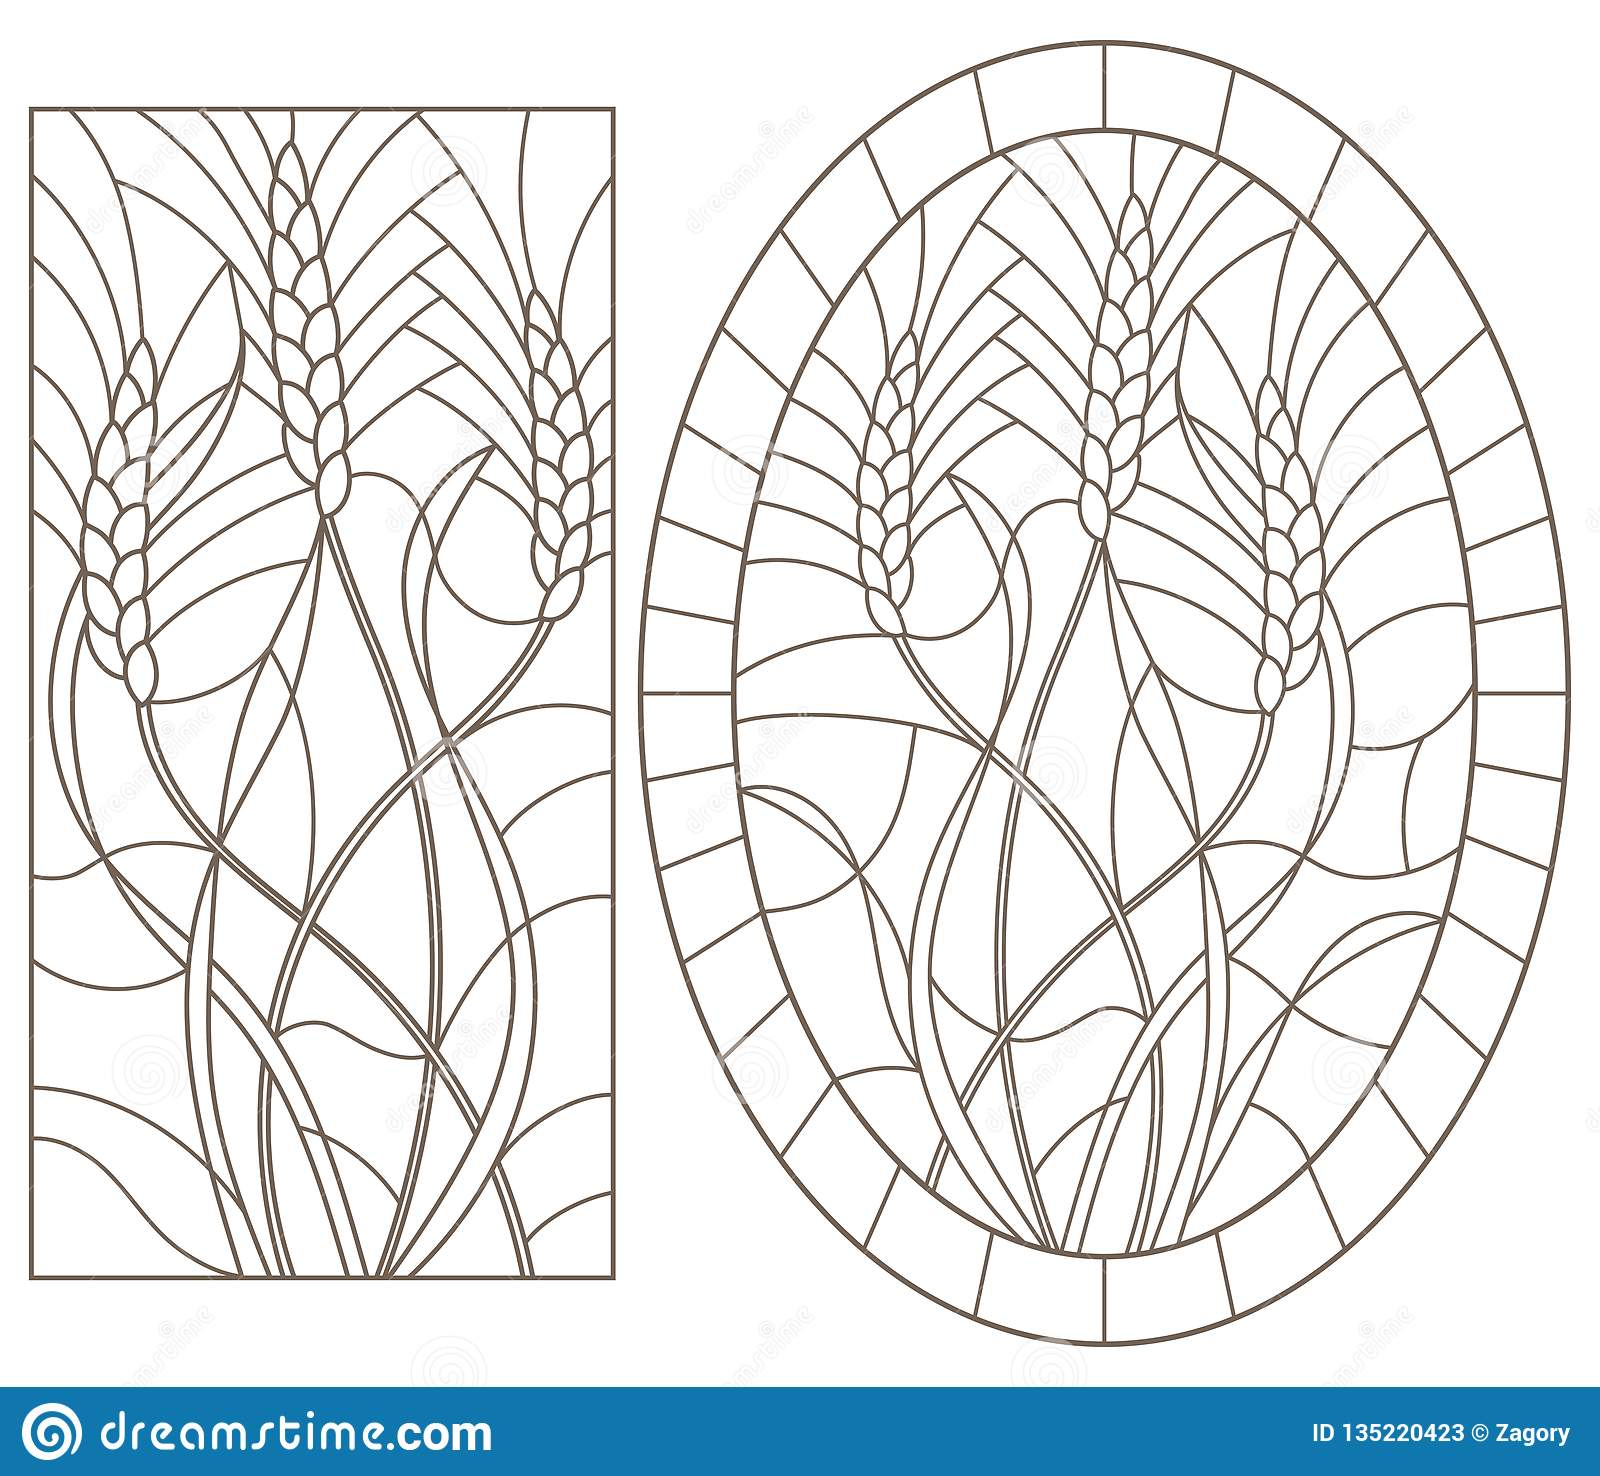 Contour set with illustrations of stained glass with wheat germ, oval and rectangular image, dark contours on a white background